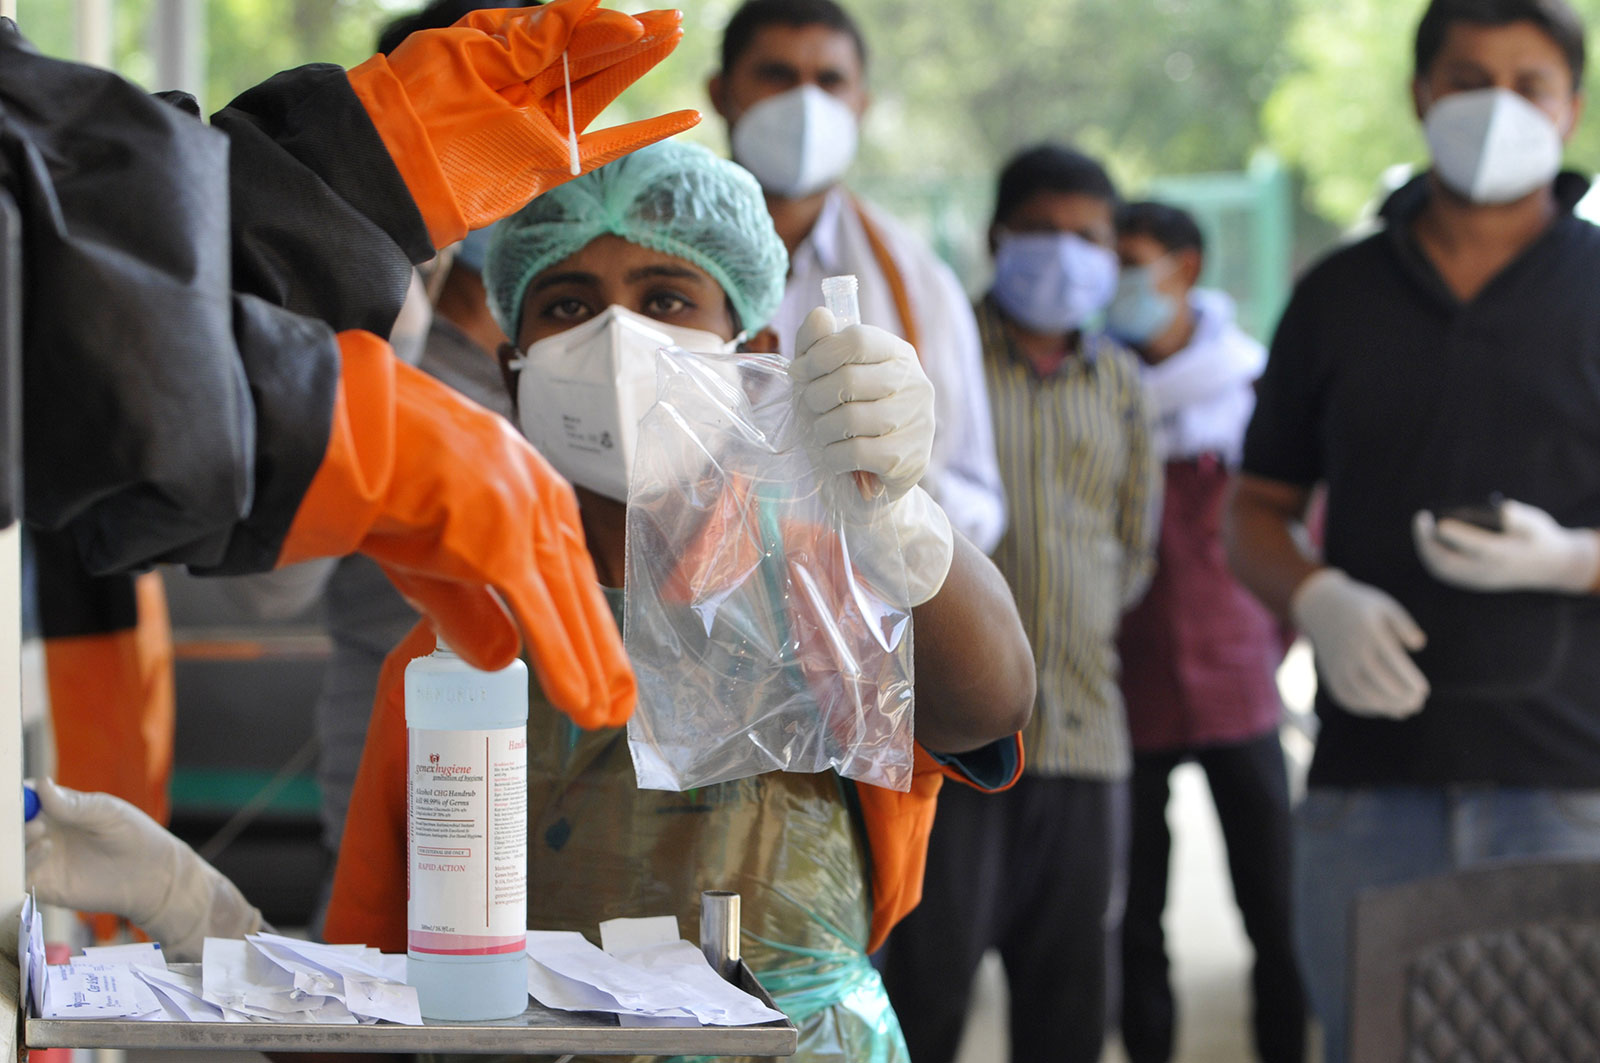 A medic handles a sample collected for Covid-19 testing at a booth outside Sharda Hospital in Greater Noida, India.